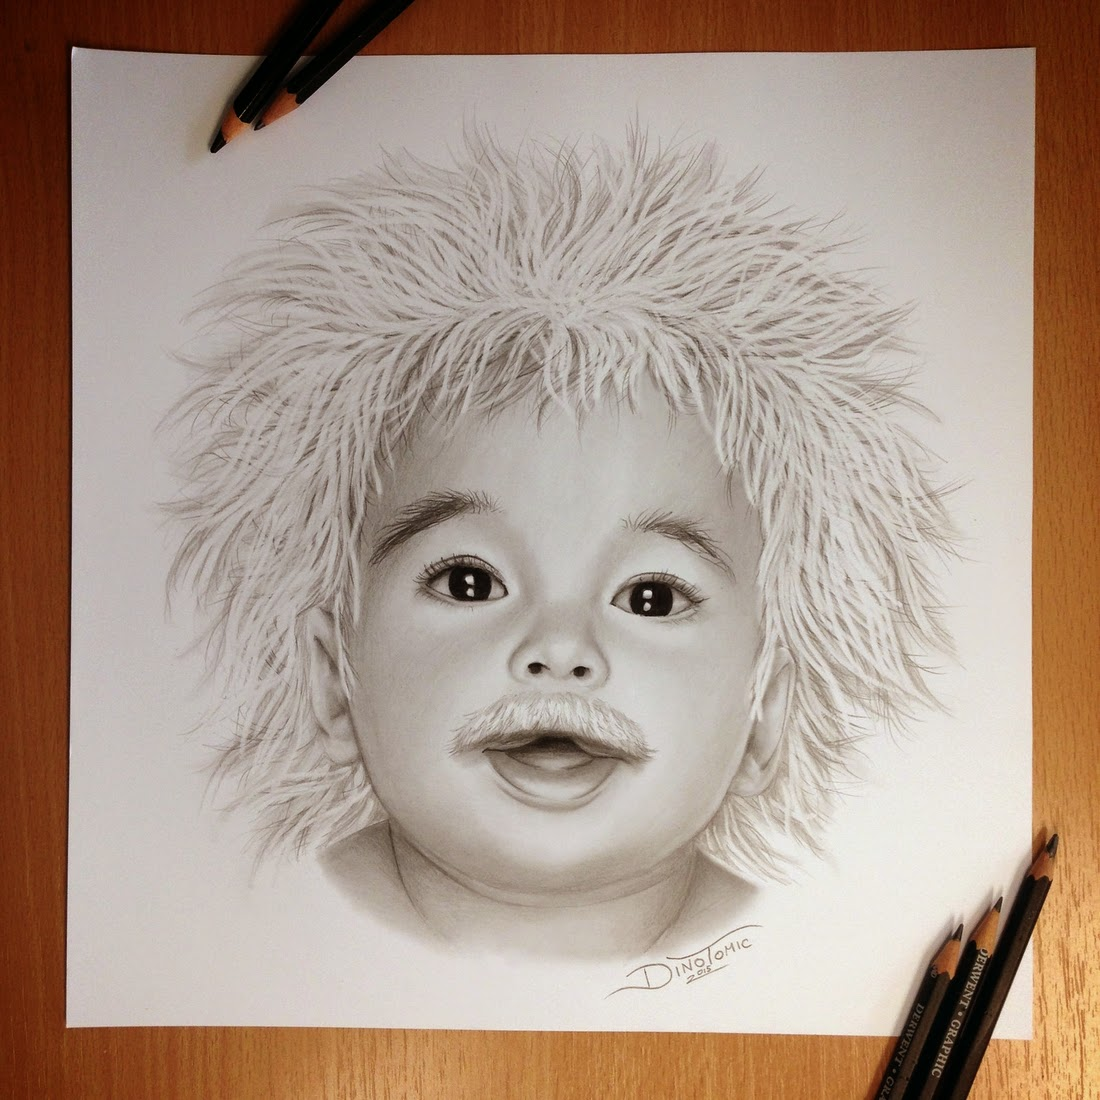 01-Baby-Einstein-Dino-Tomic-AtomiccircuS-Mastering-Art-in-Eclectic-Drawings-www-designstack-co